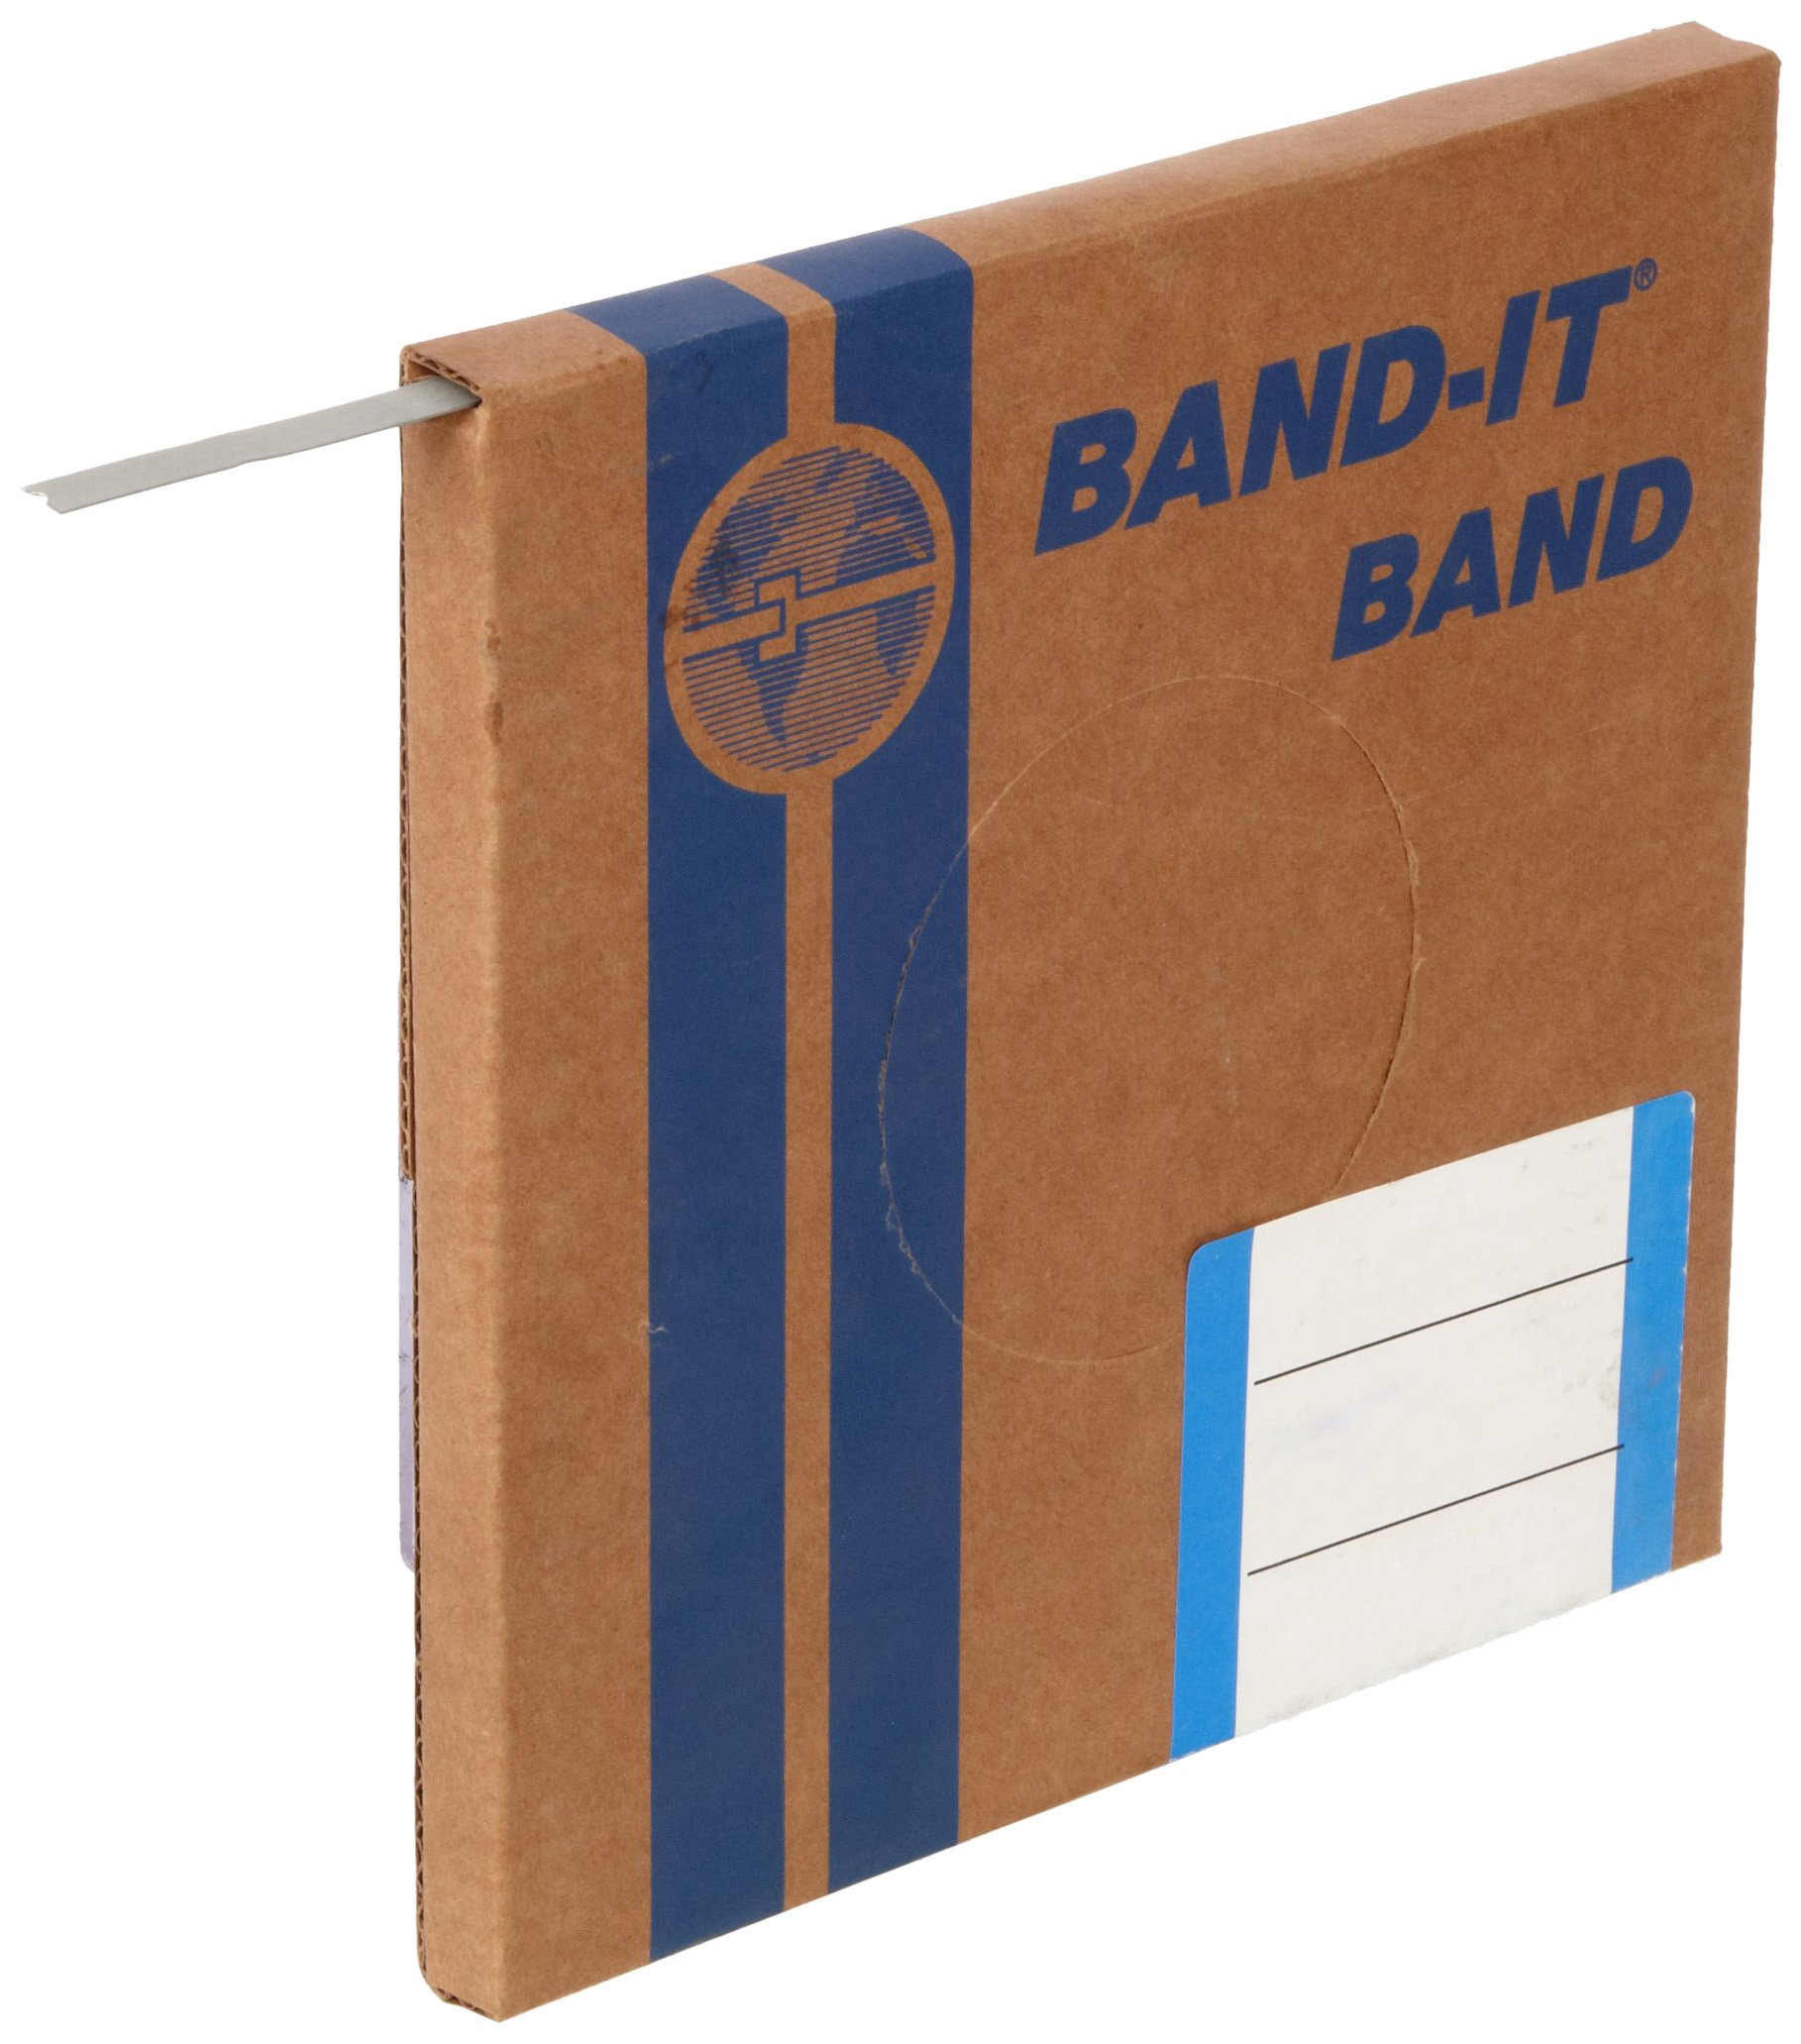 BAND-IT C30399 Galvanized Carbon Steel Band, 3/8'' Width X 0.025'' Thick, 100 Feet Roll